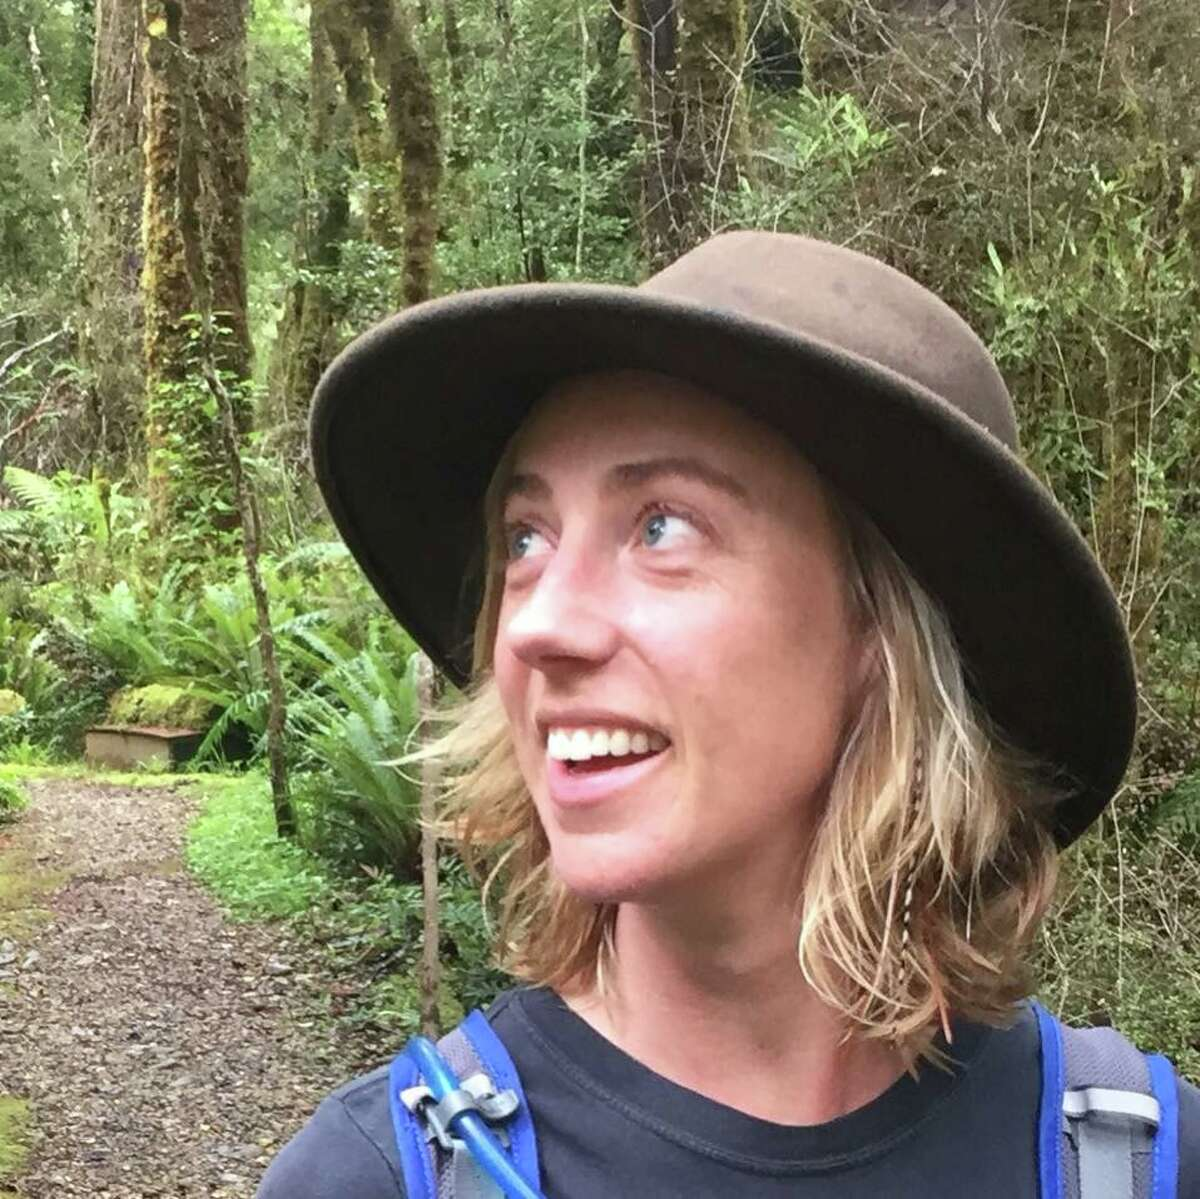 Kristy Finstad, a Santa Cruz marine biologist and co-owner of Worldwide Diving Adventures, the group which chartered the Conception, died in the dive boat fire.